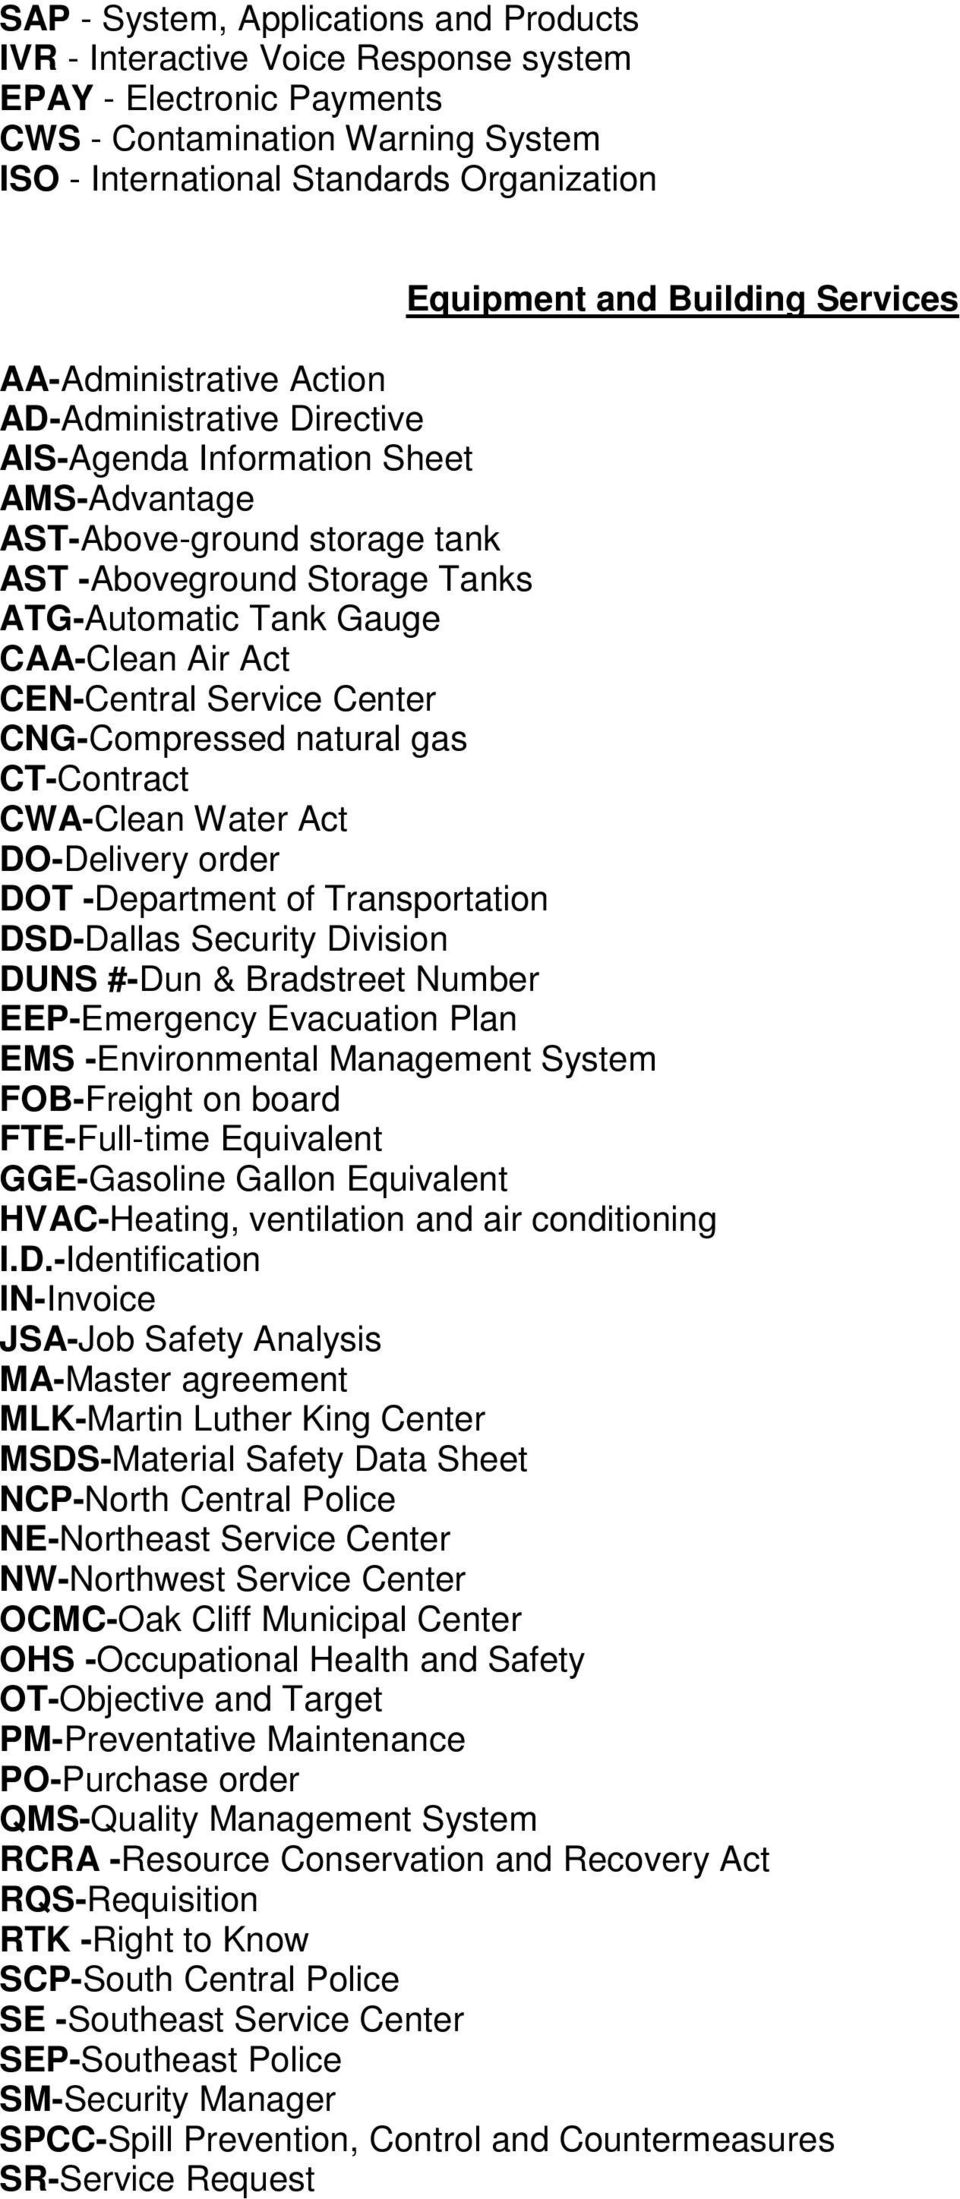 CAA-Clean Air Act CEN-Central Service Center CNG-Compressed natural gas CT-Contract CWA-Clean Water Act DO-Delivery order DOT -Department of Transportation DSD-Dallas Security Division DUNS #-Dun &